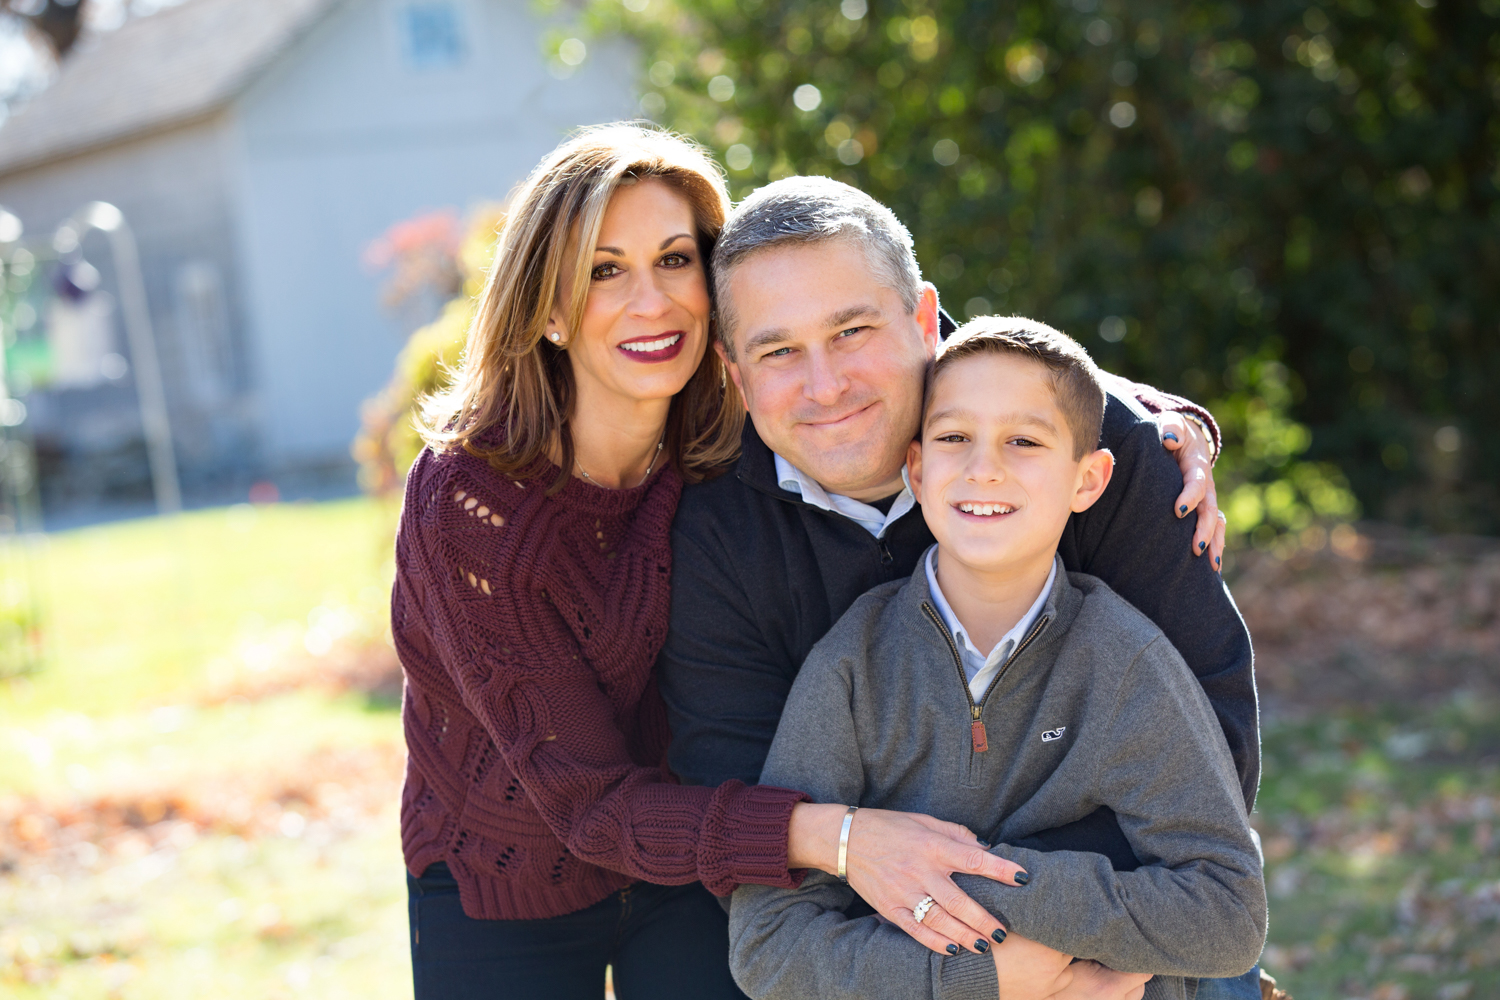 lLoving family enjoying their photography session at the Kissam House in Huntington NY